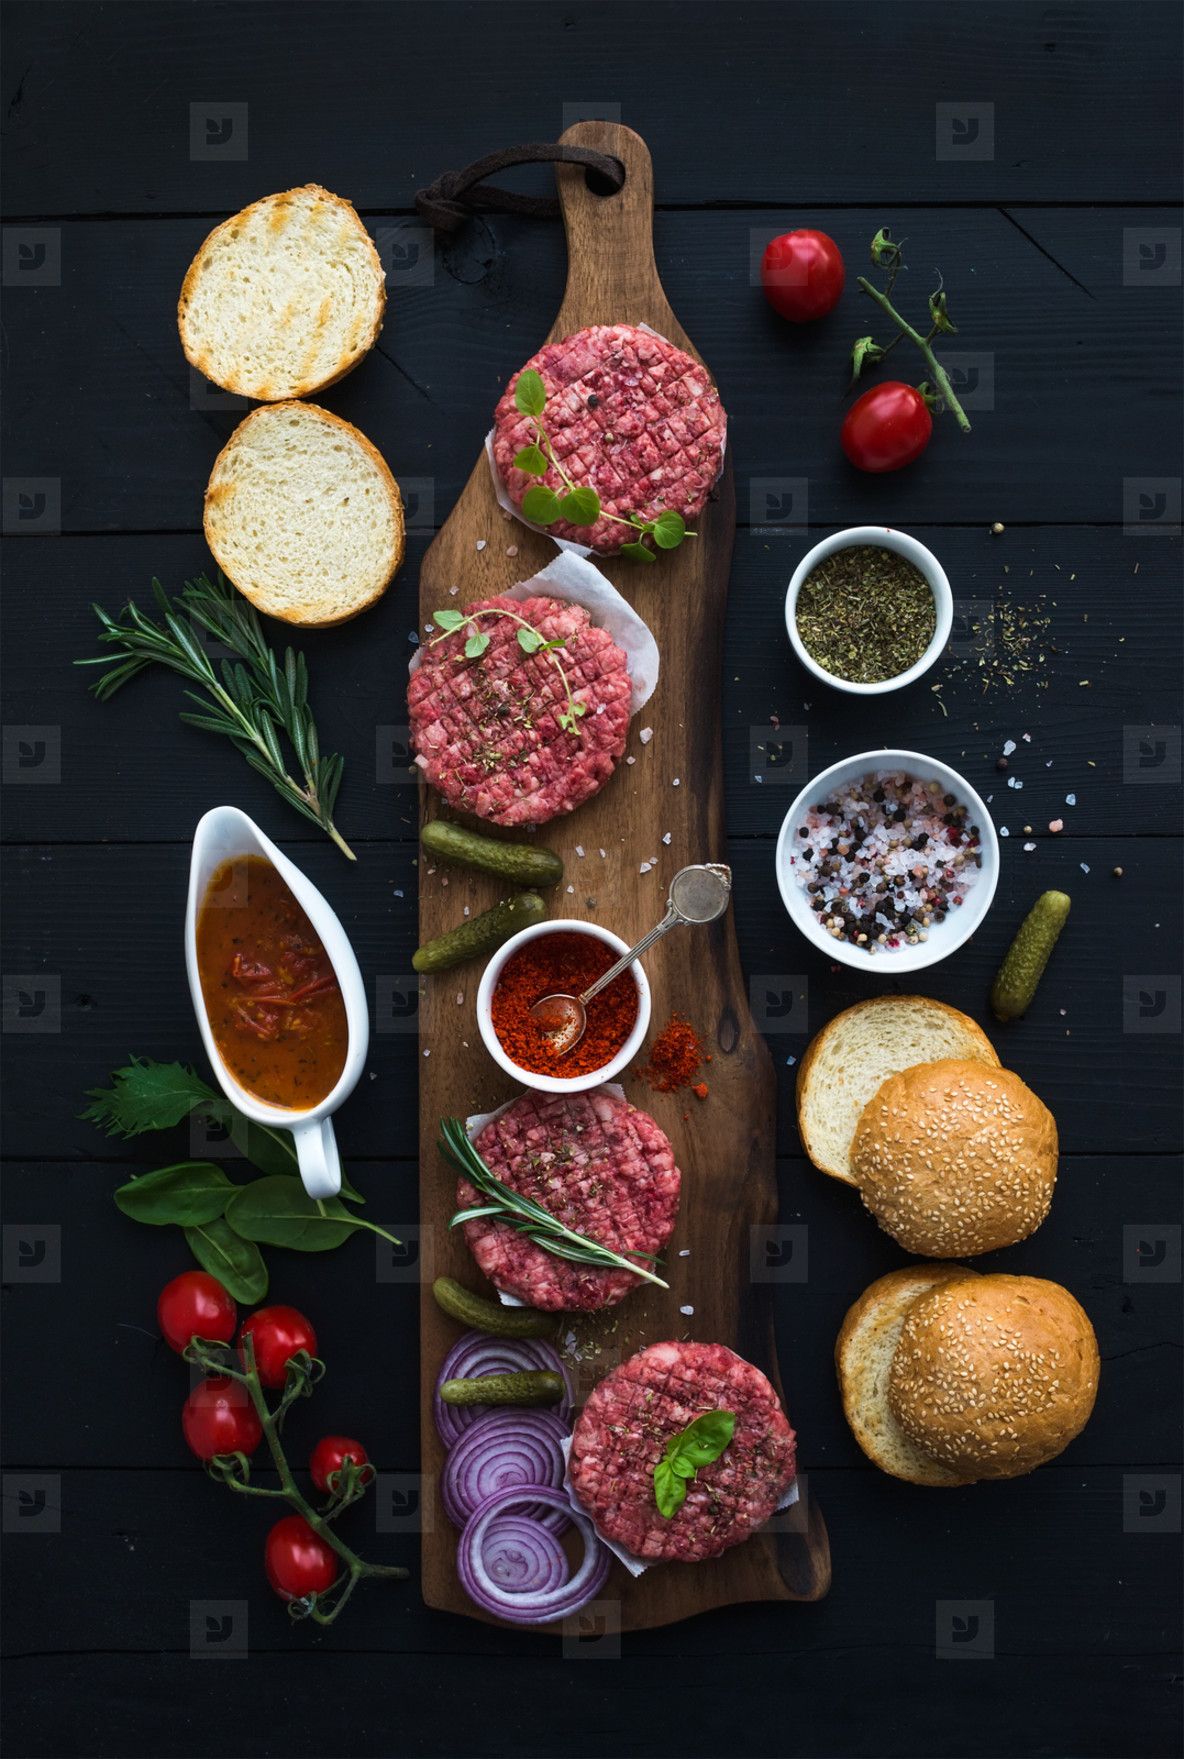 Ingredients for cooking burgers  Raw ground beef meat cutlets on wooden board  red onion  cherry tomatoes  greens  pickles  tomato sauce  cheese  herbs and spices over black background  top view